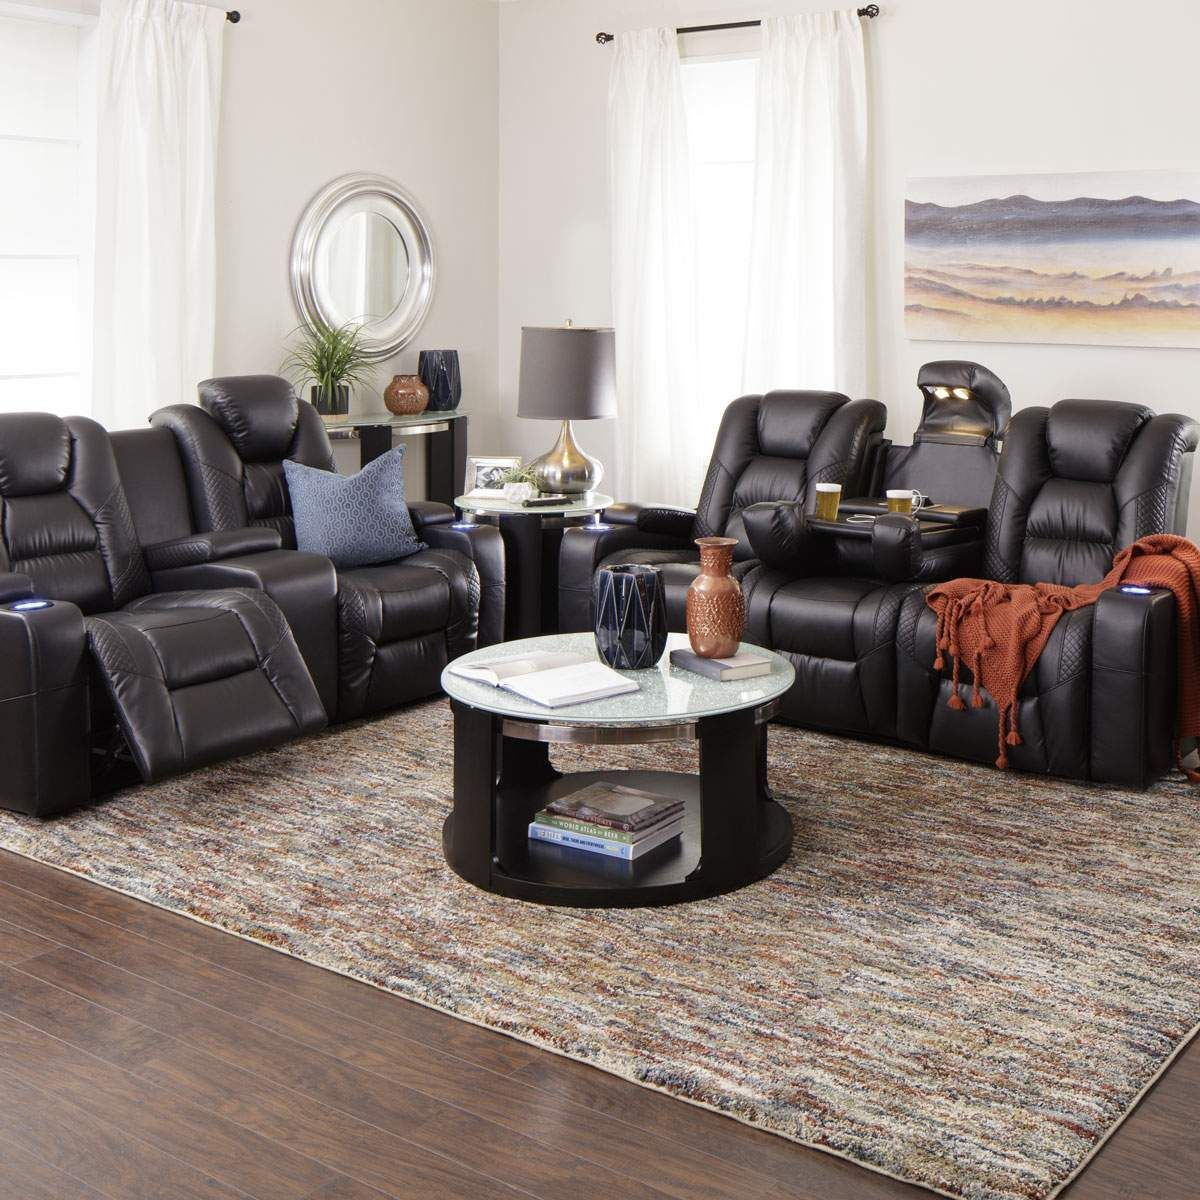 Victory Living Room Recliner Farmhouse Living Room Furniture